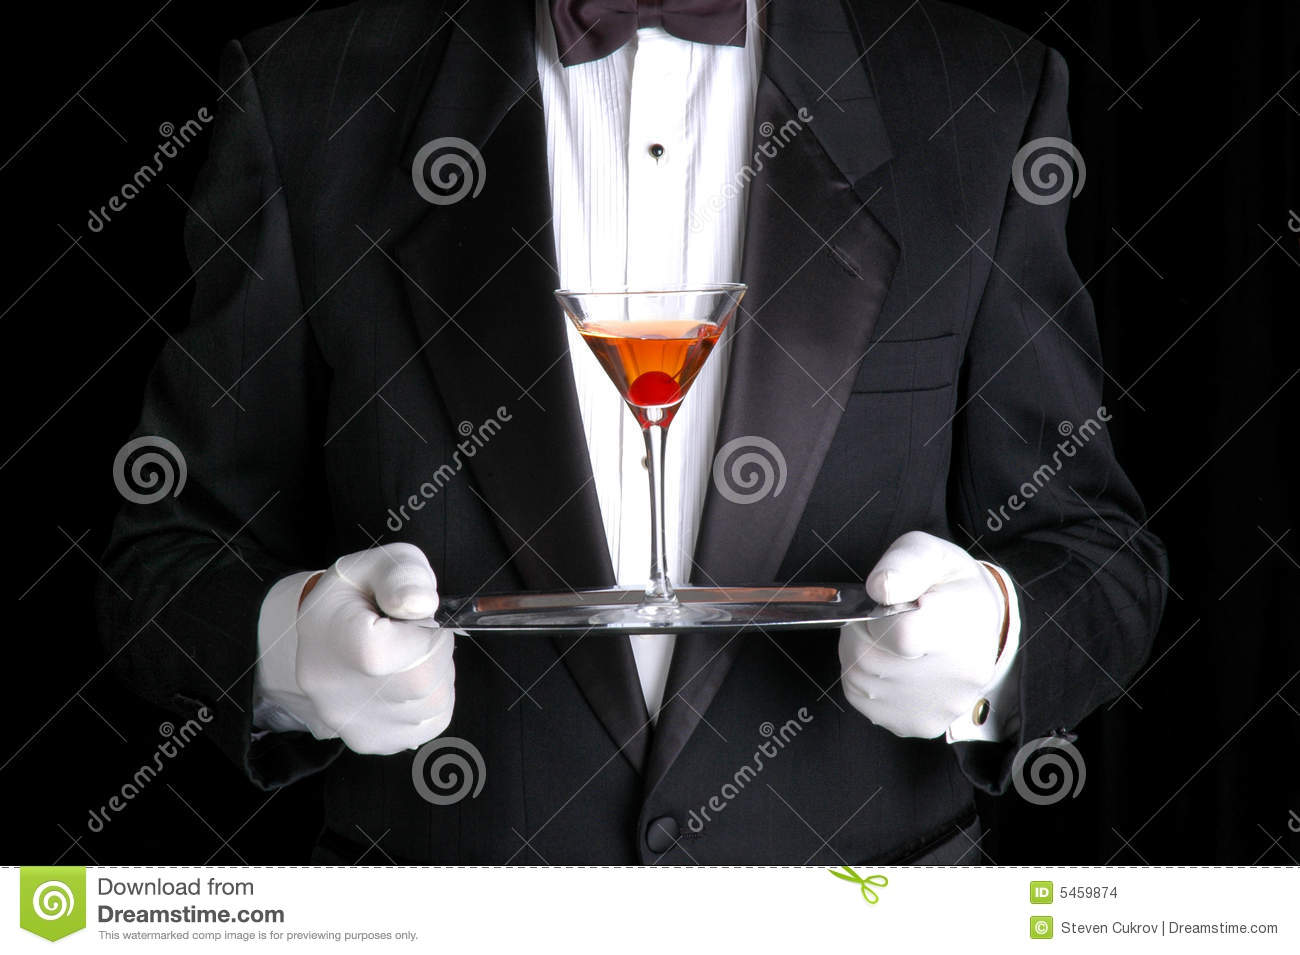 Man Holding a Cocktail on Silver Tray